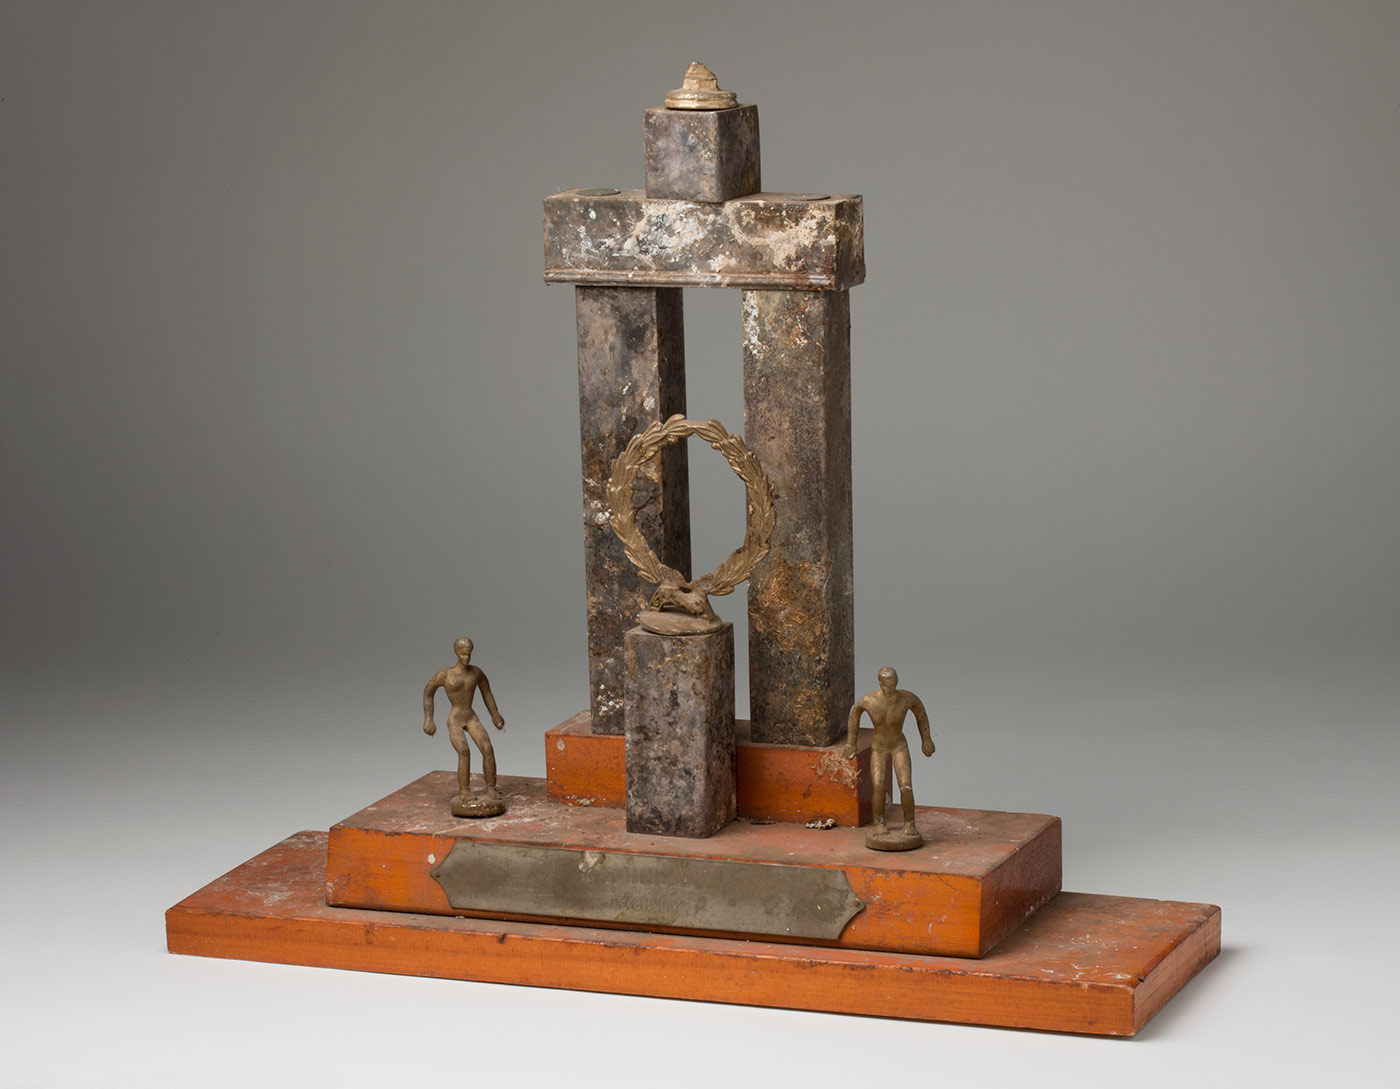 A trophy with a stepped wooden base, a metal 'triumphal arch' feature, a pillar with a laurel wreath and a male and female figure either side. The trophy is streaked with bird droppings. - click to view larger image